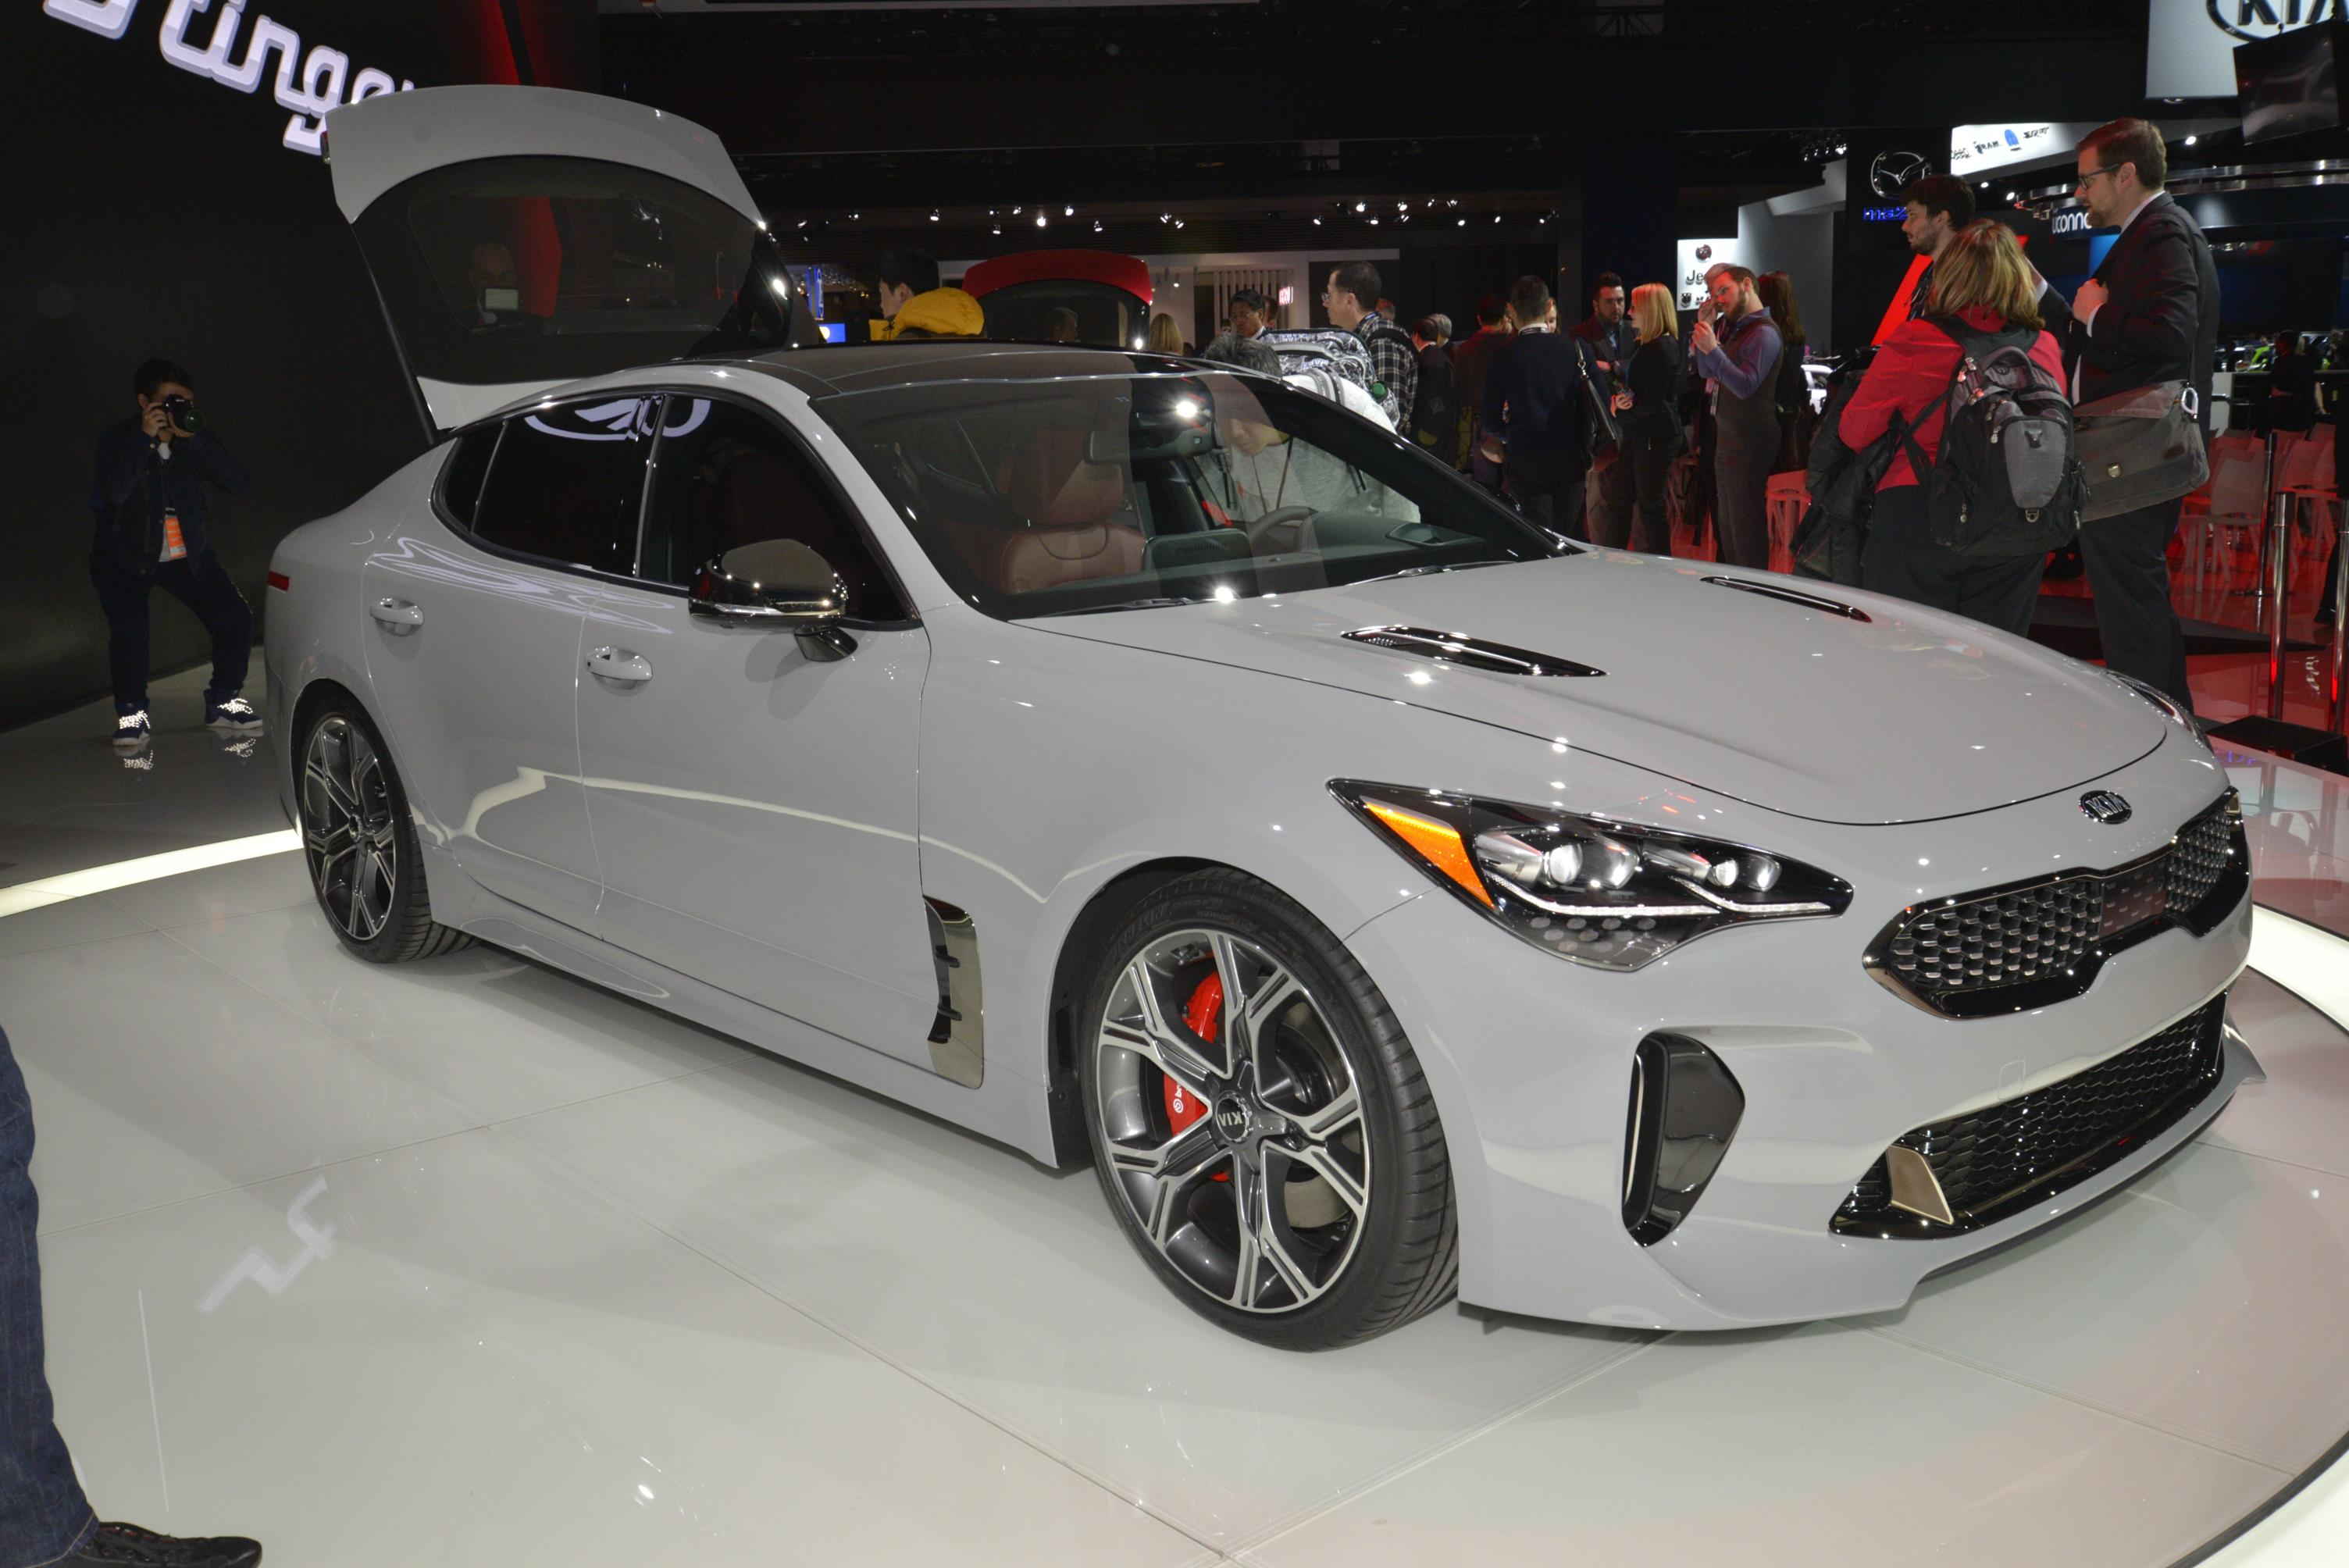 gt stinger kia front motion cars car stung review trend first test sports in exclusive well view side motor